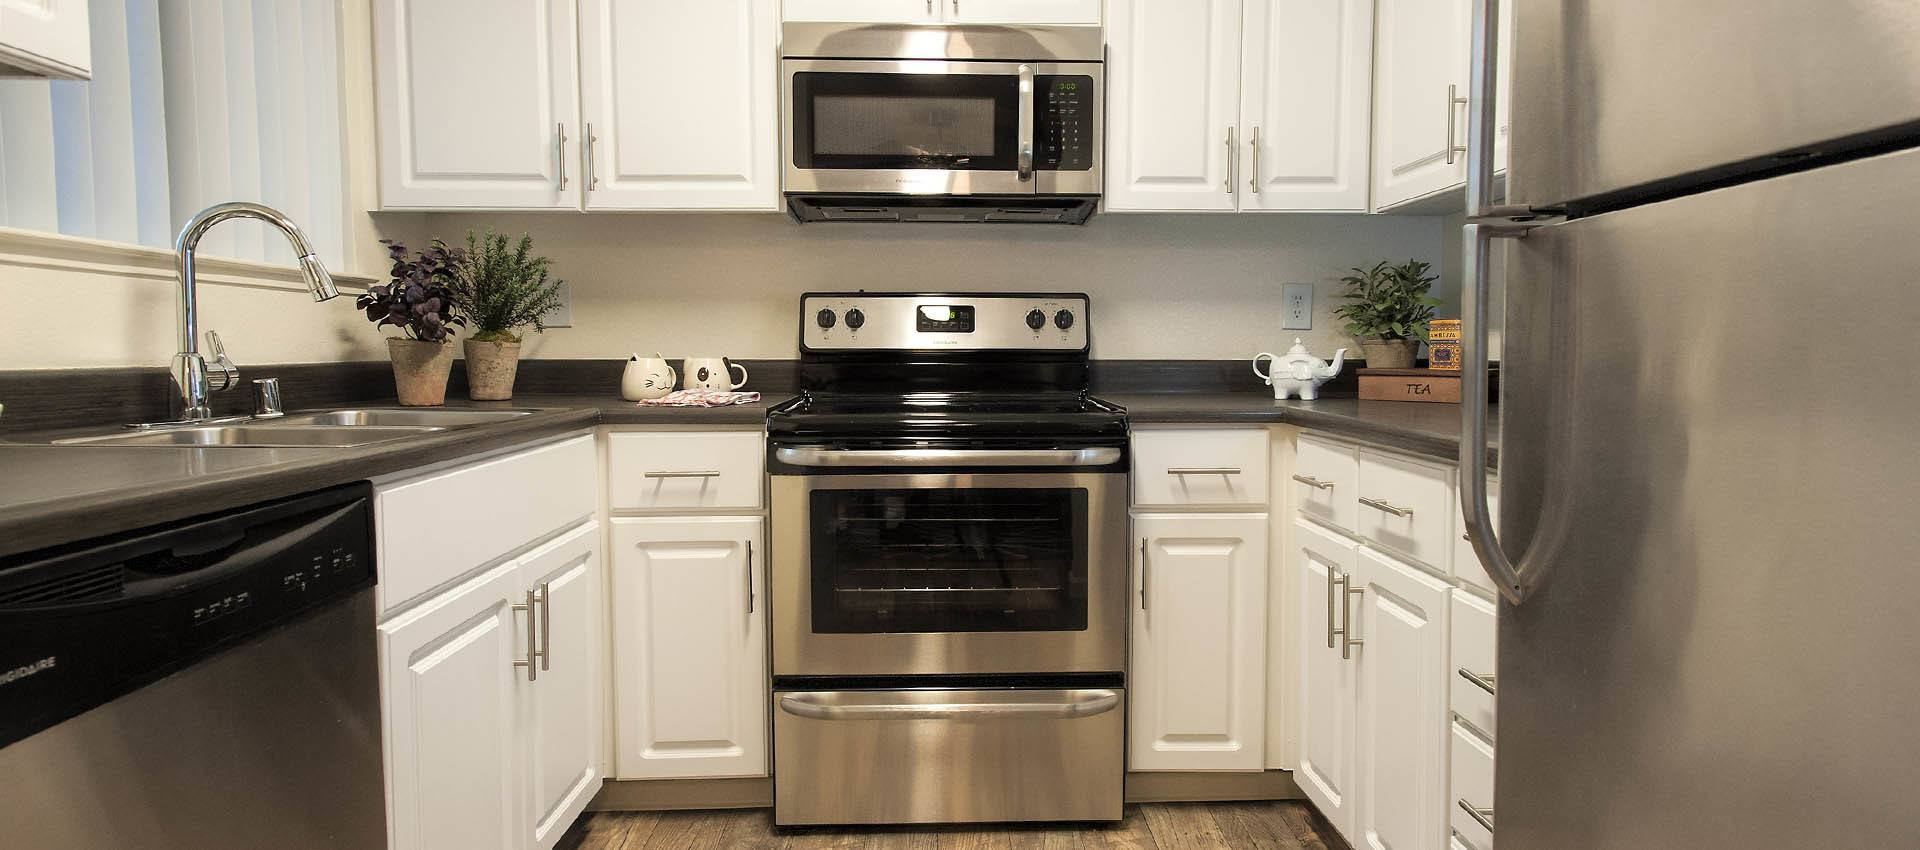 Kitchen With Stainless Appliances at Hidden Lake Condominium Rentals in Sacramento, California